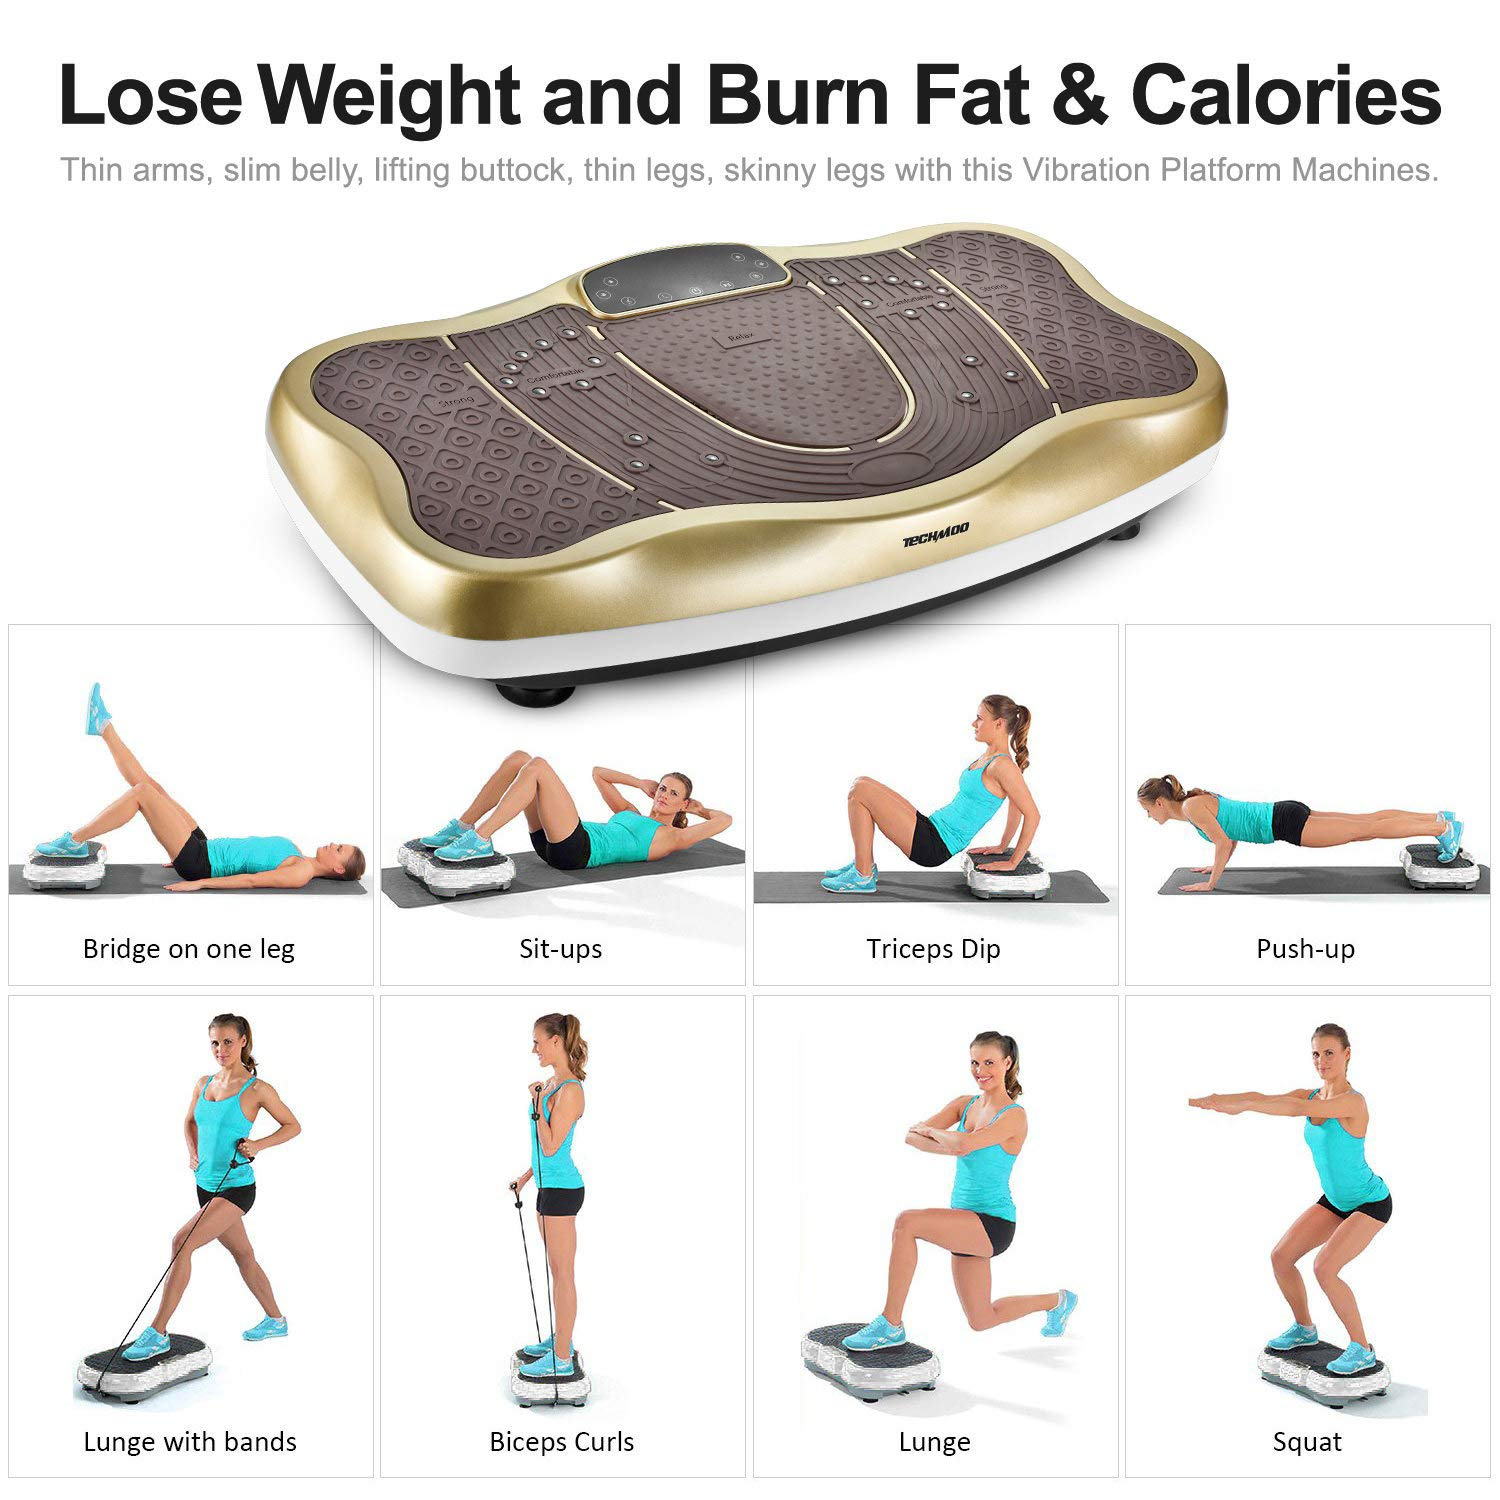 TECHMOO Fitness Vibration Power Plate Platform Whole Body Workout Exercise Machine Home Exercise Equipment W//Remote Control /& Bands for Home Fitness Losing Weight Max User Weight 265lbs